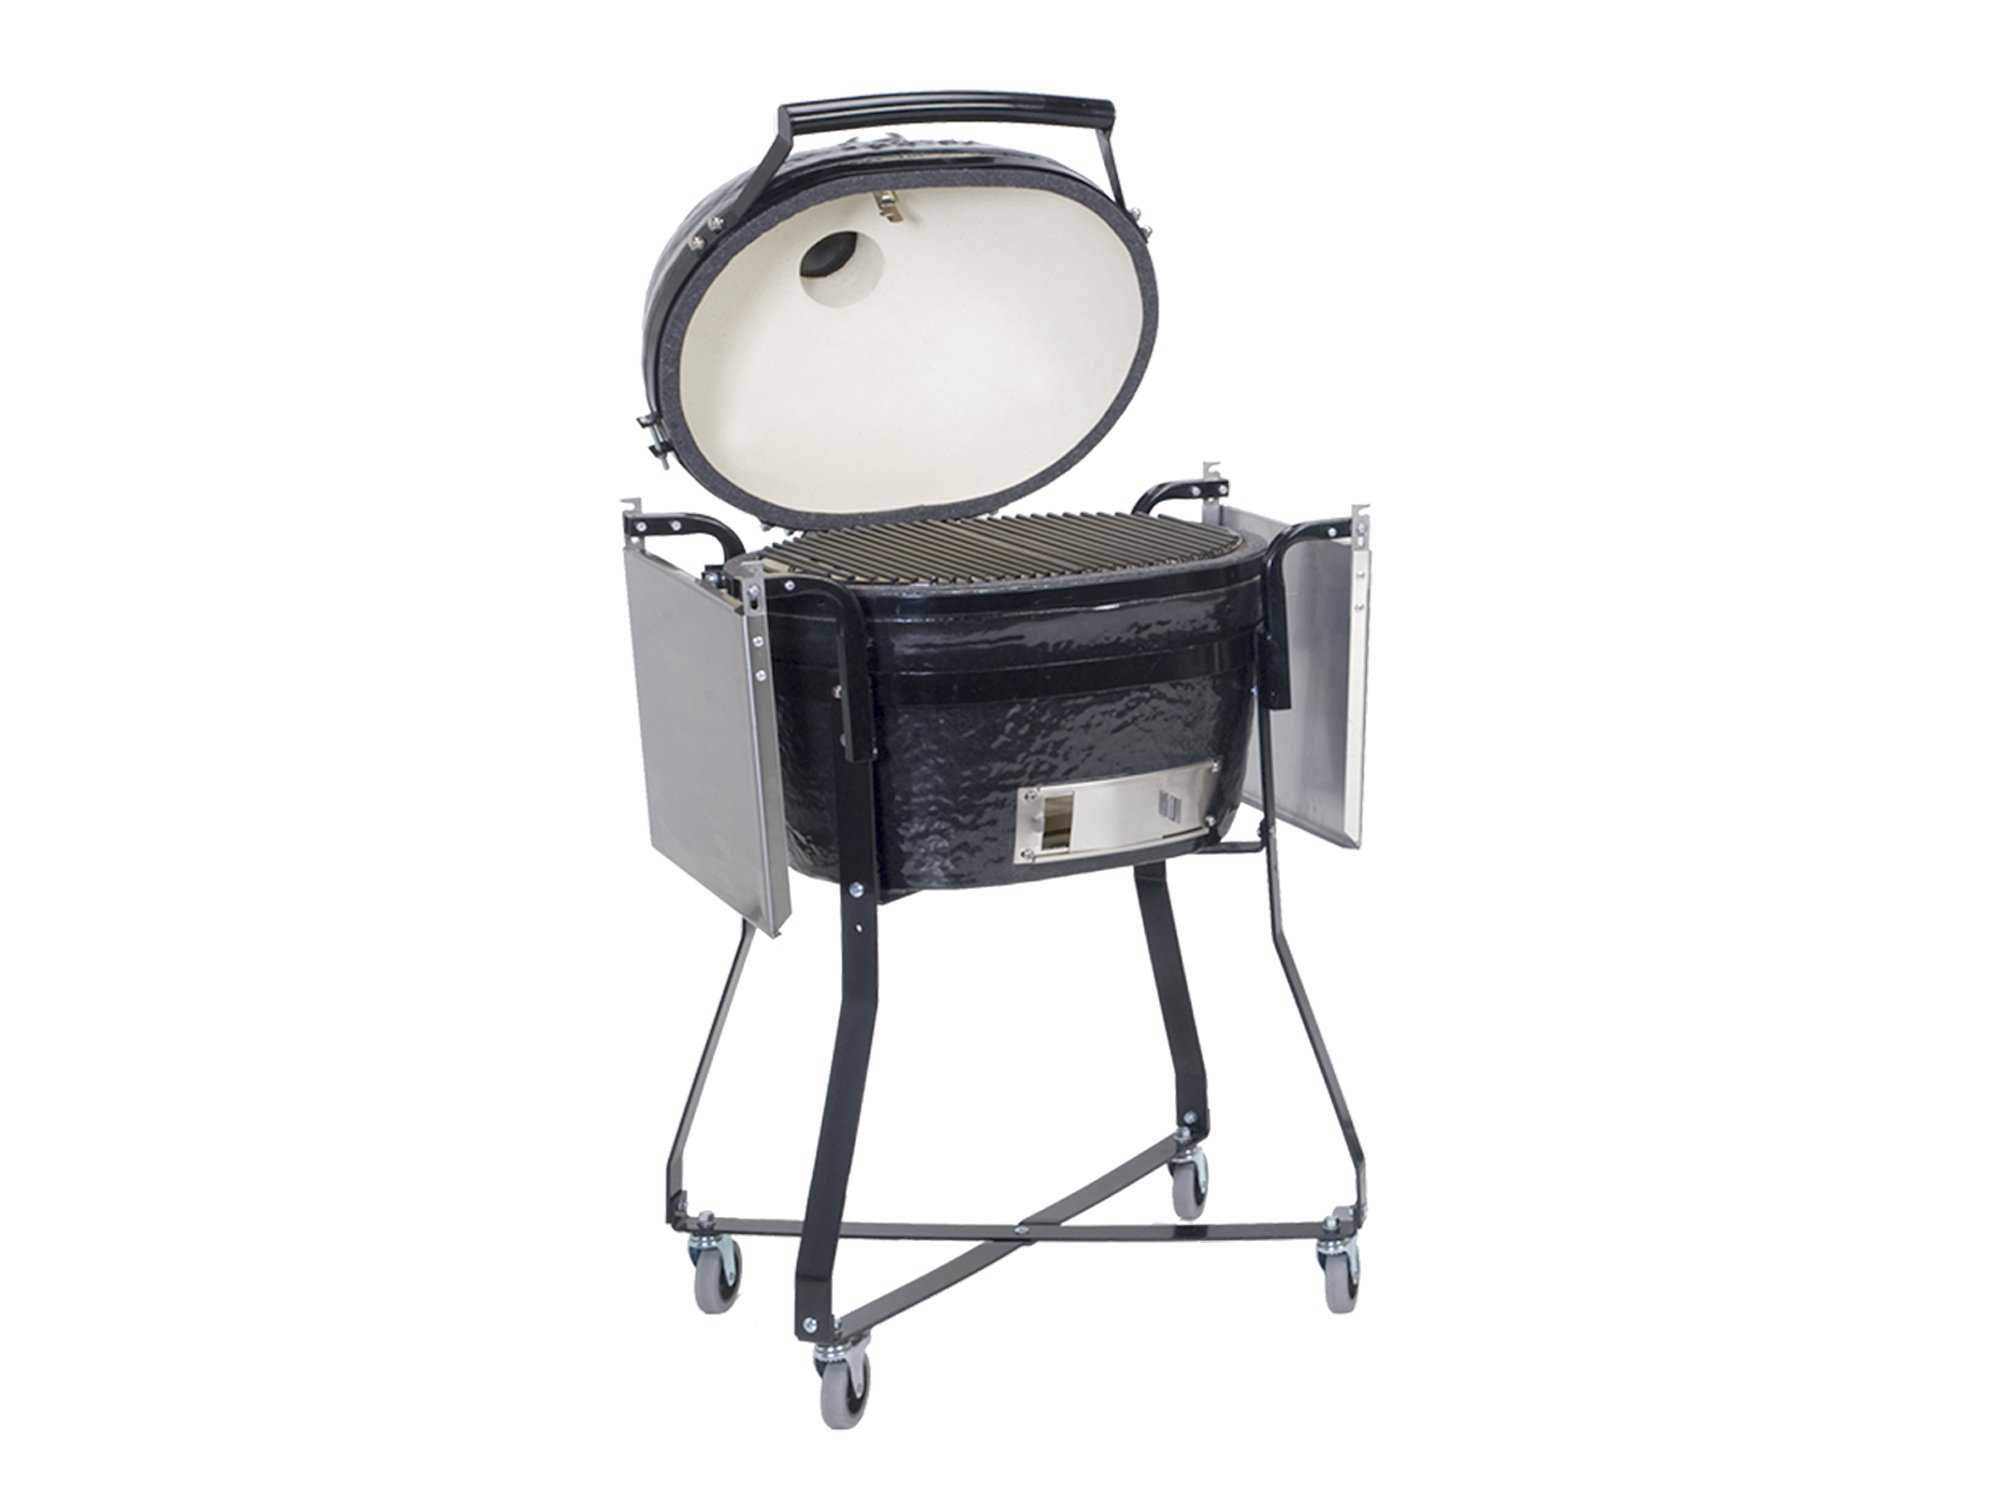 Primo Oval 200 Jr Ceramic Smoker Grill In Caddie With